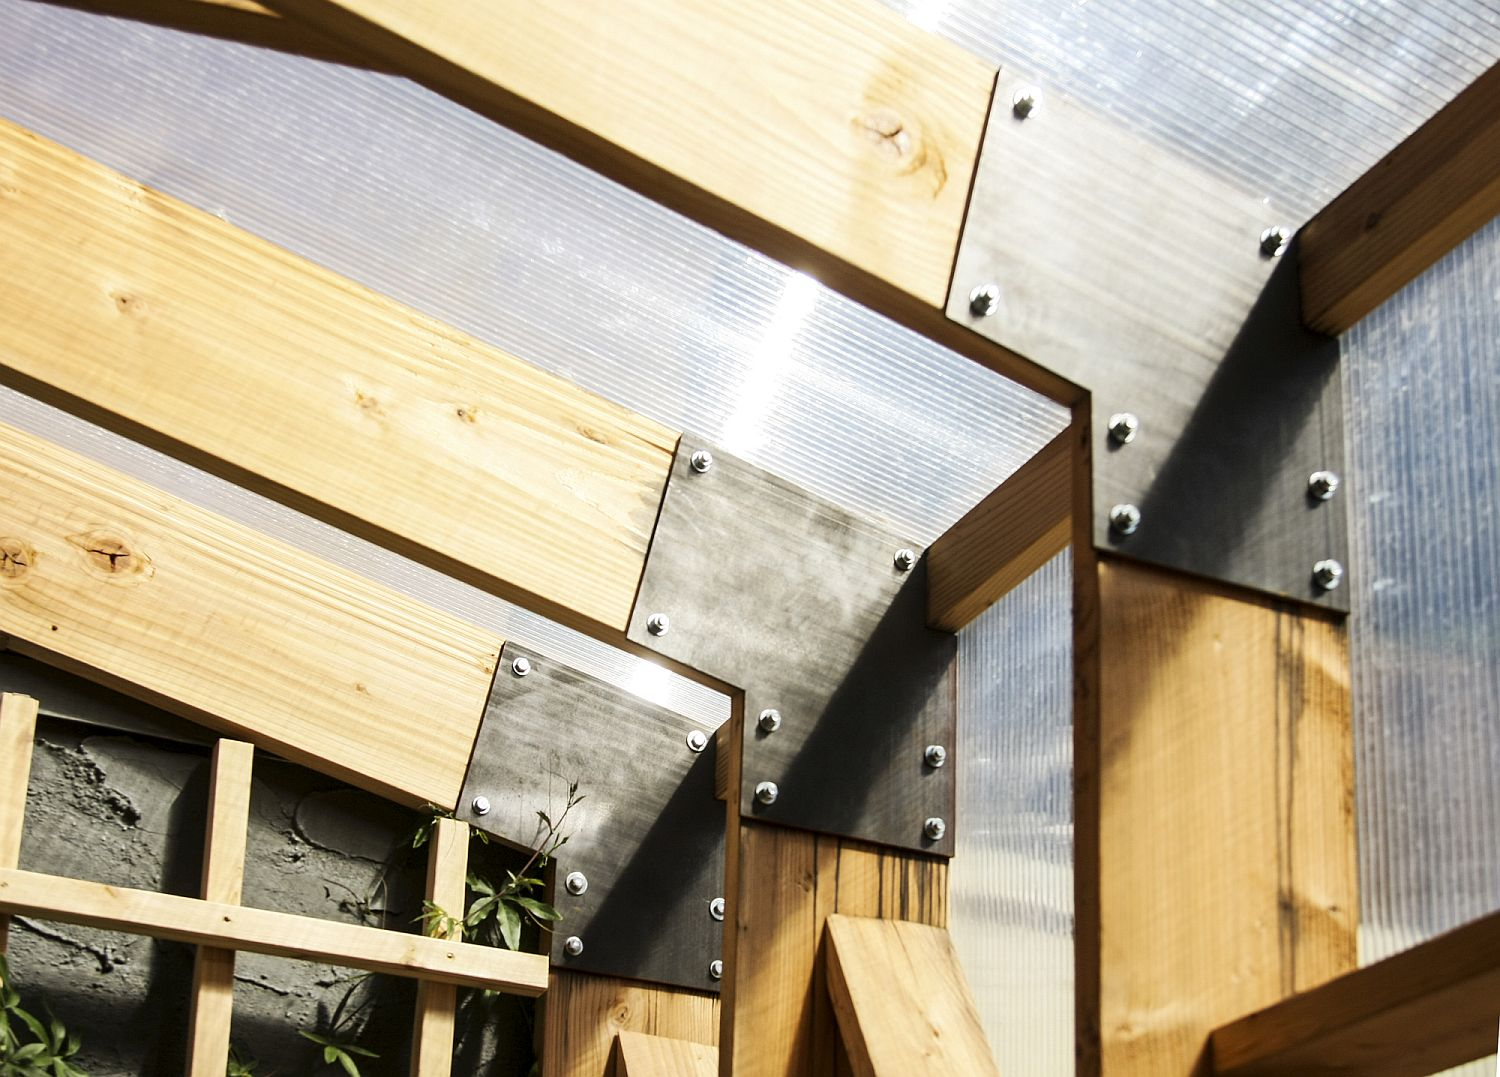 Wooden-frame-of-the-solarium-enhanced-using-metal-joints